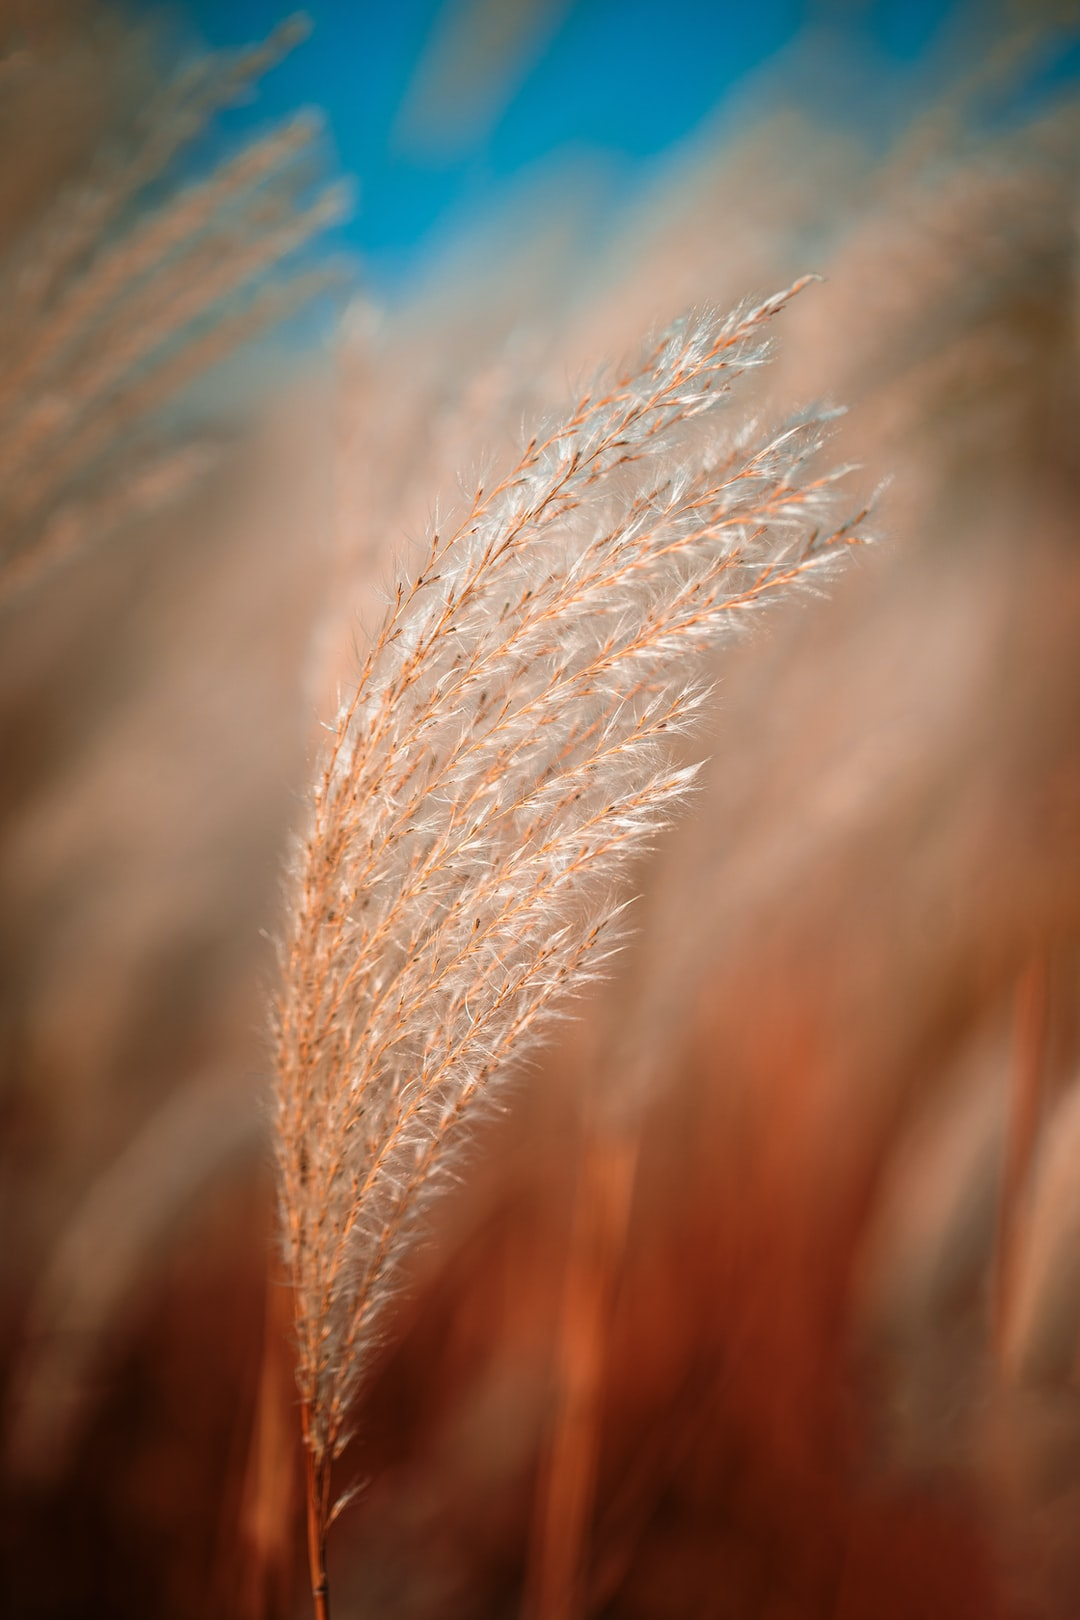 Cortaderia Selloana known as Pampas grass. Family: Poaceae. Very fluffy silver pampas grasses